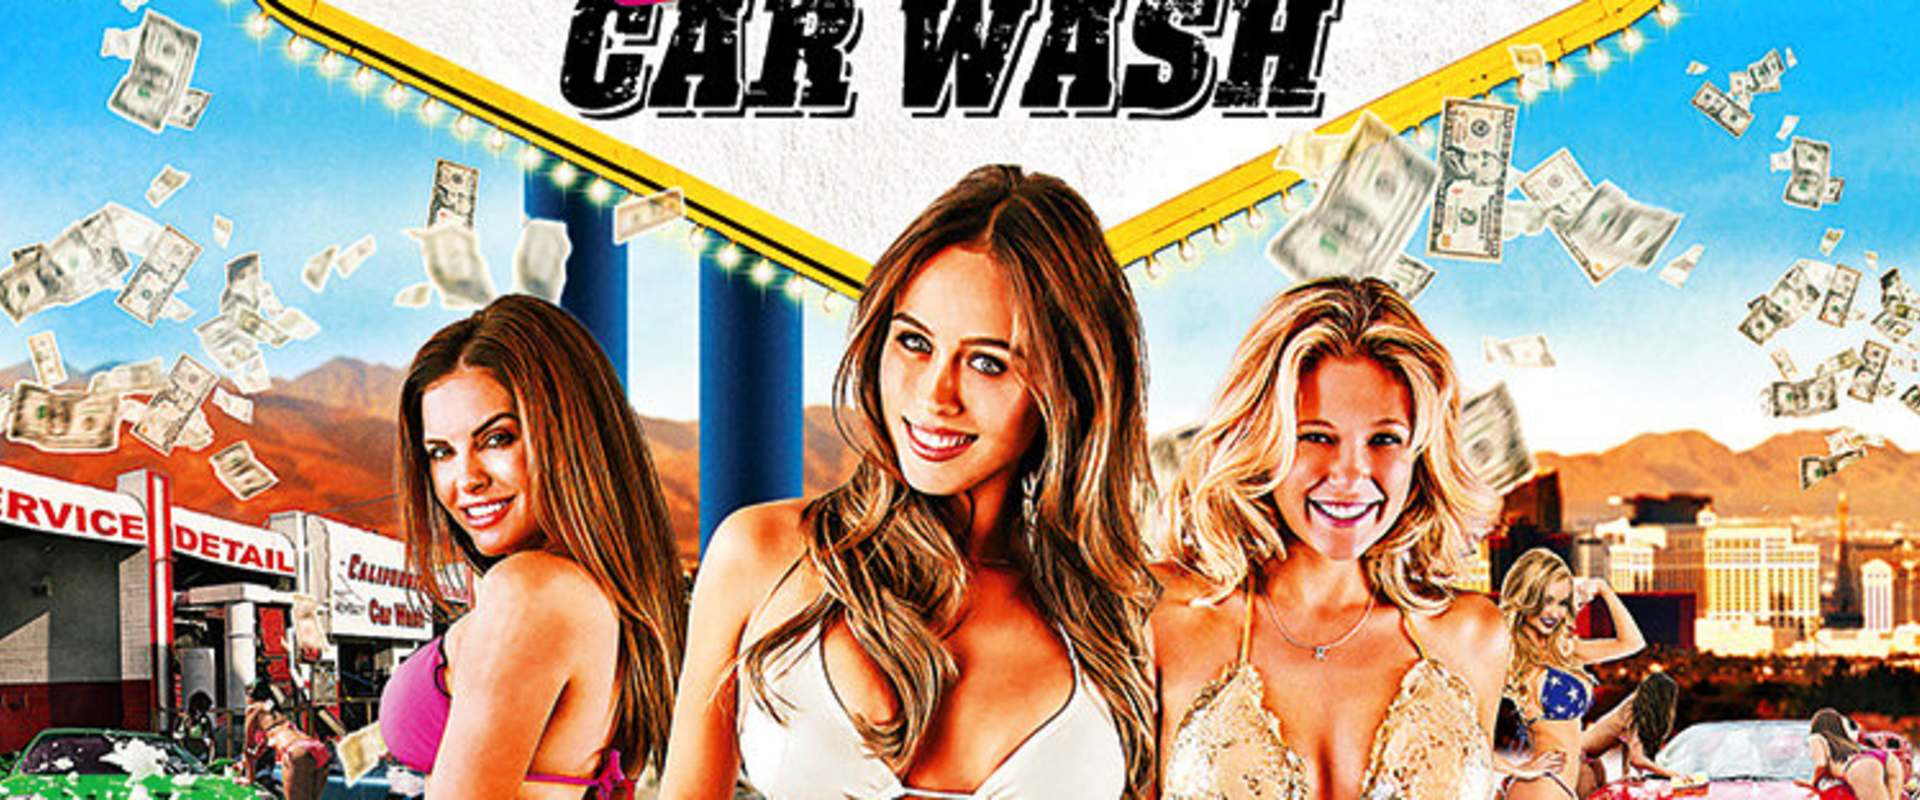 All American Bikini Car Wash background 1